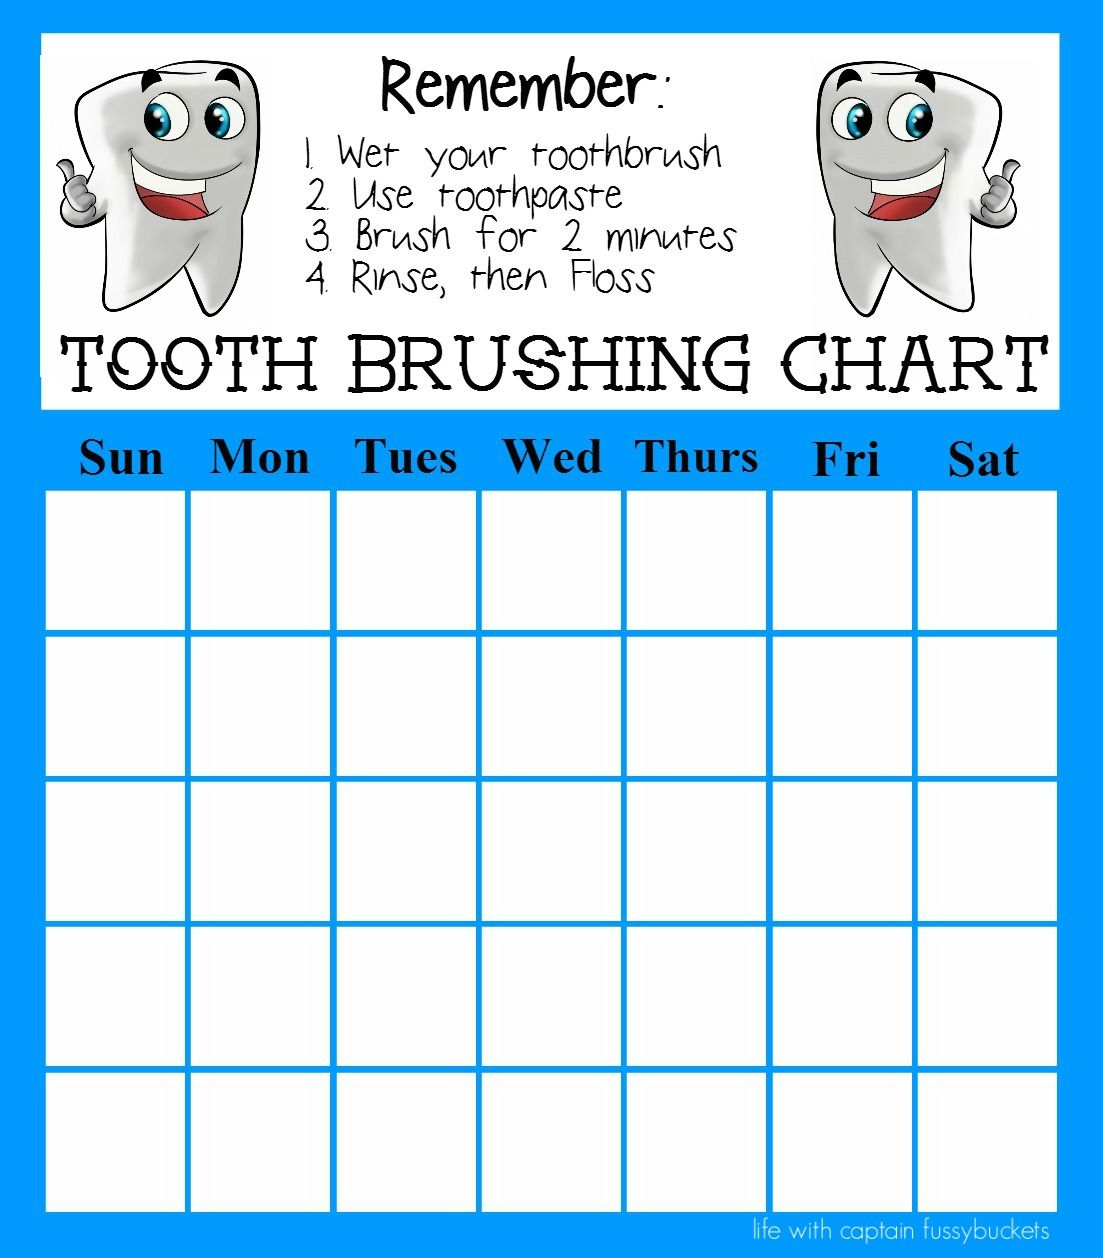 Print Out This Free Tooth Brushing Chart To Help Kids